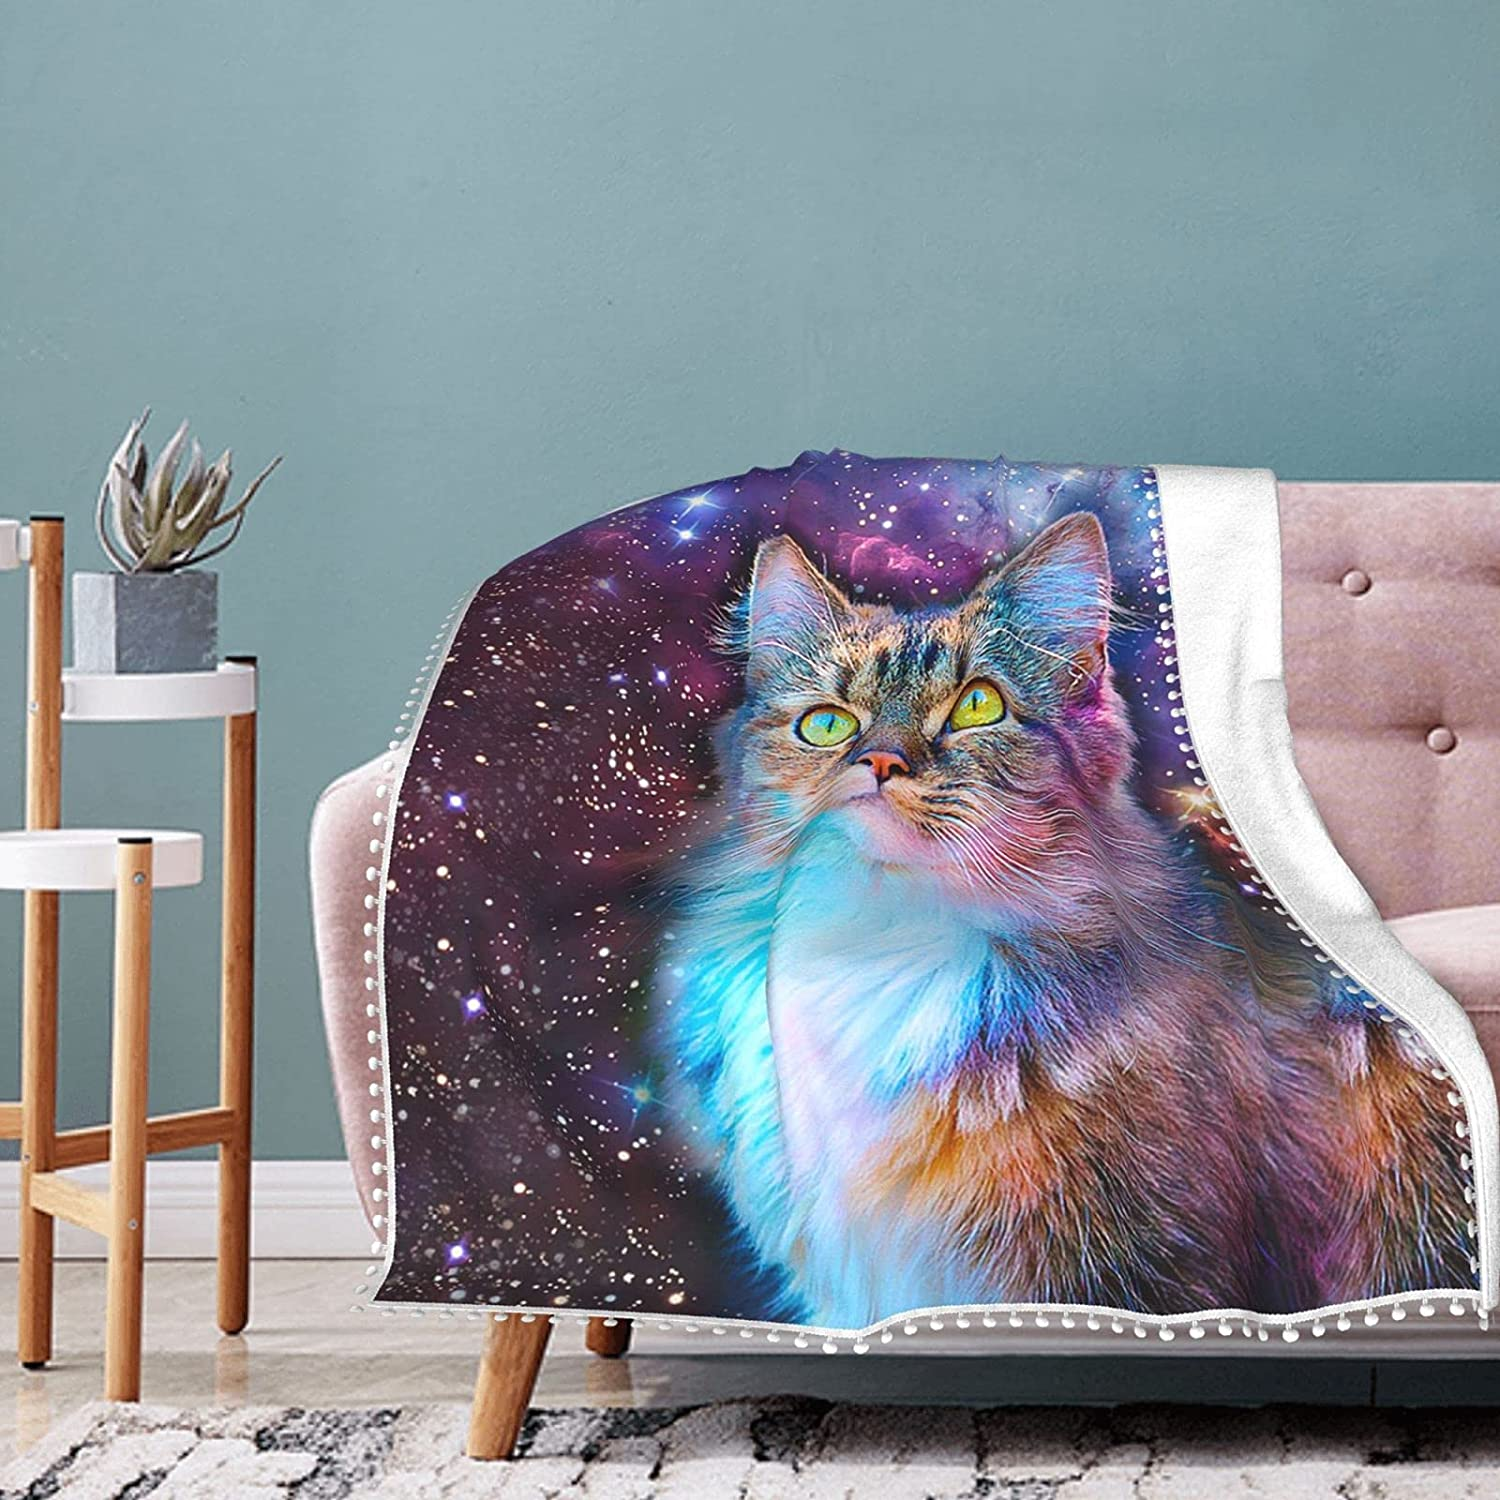 Beautiful Cat Starry Sky Fleece Blanket Summ 67% OFF of fixed price Pompom with Super beauty product restock quality top! Fringe